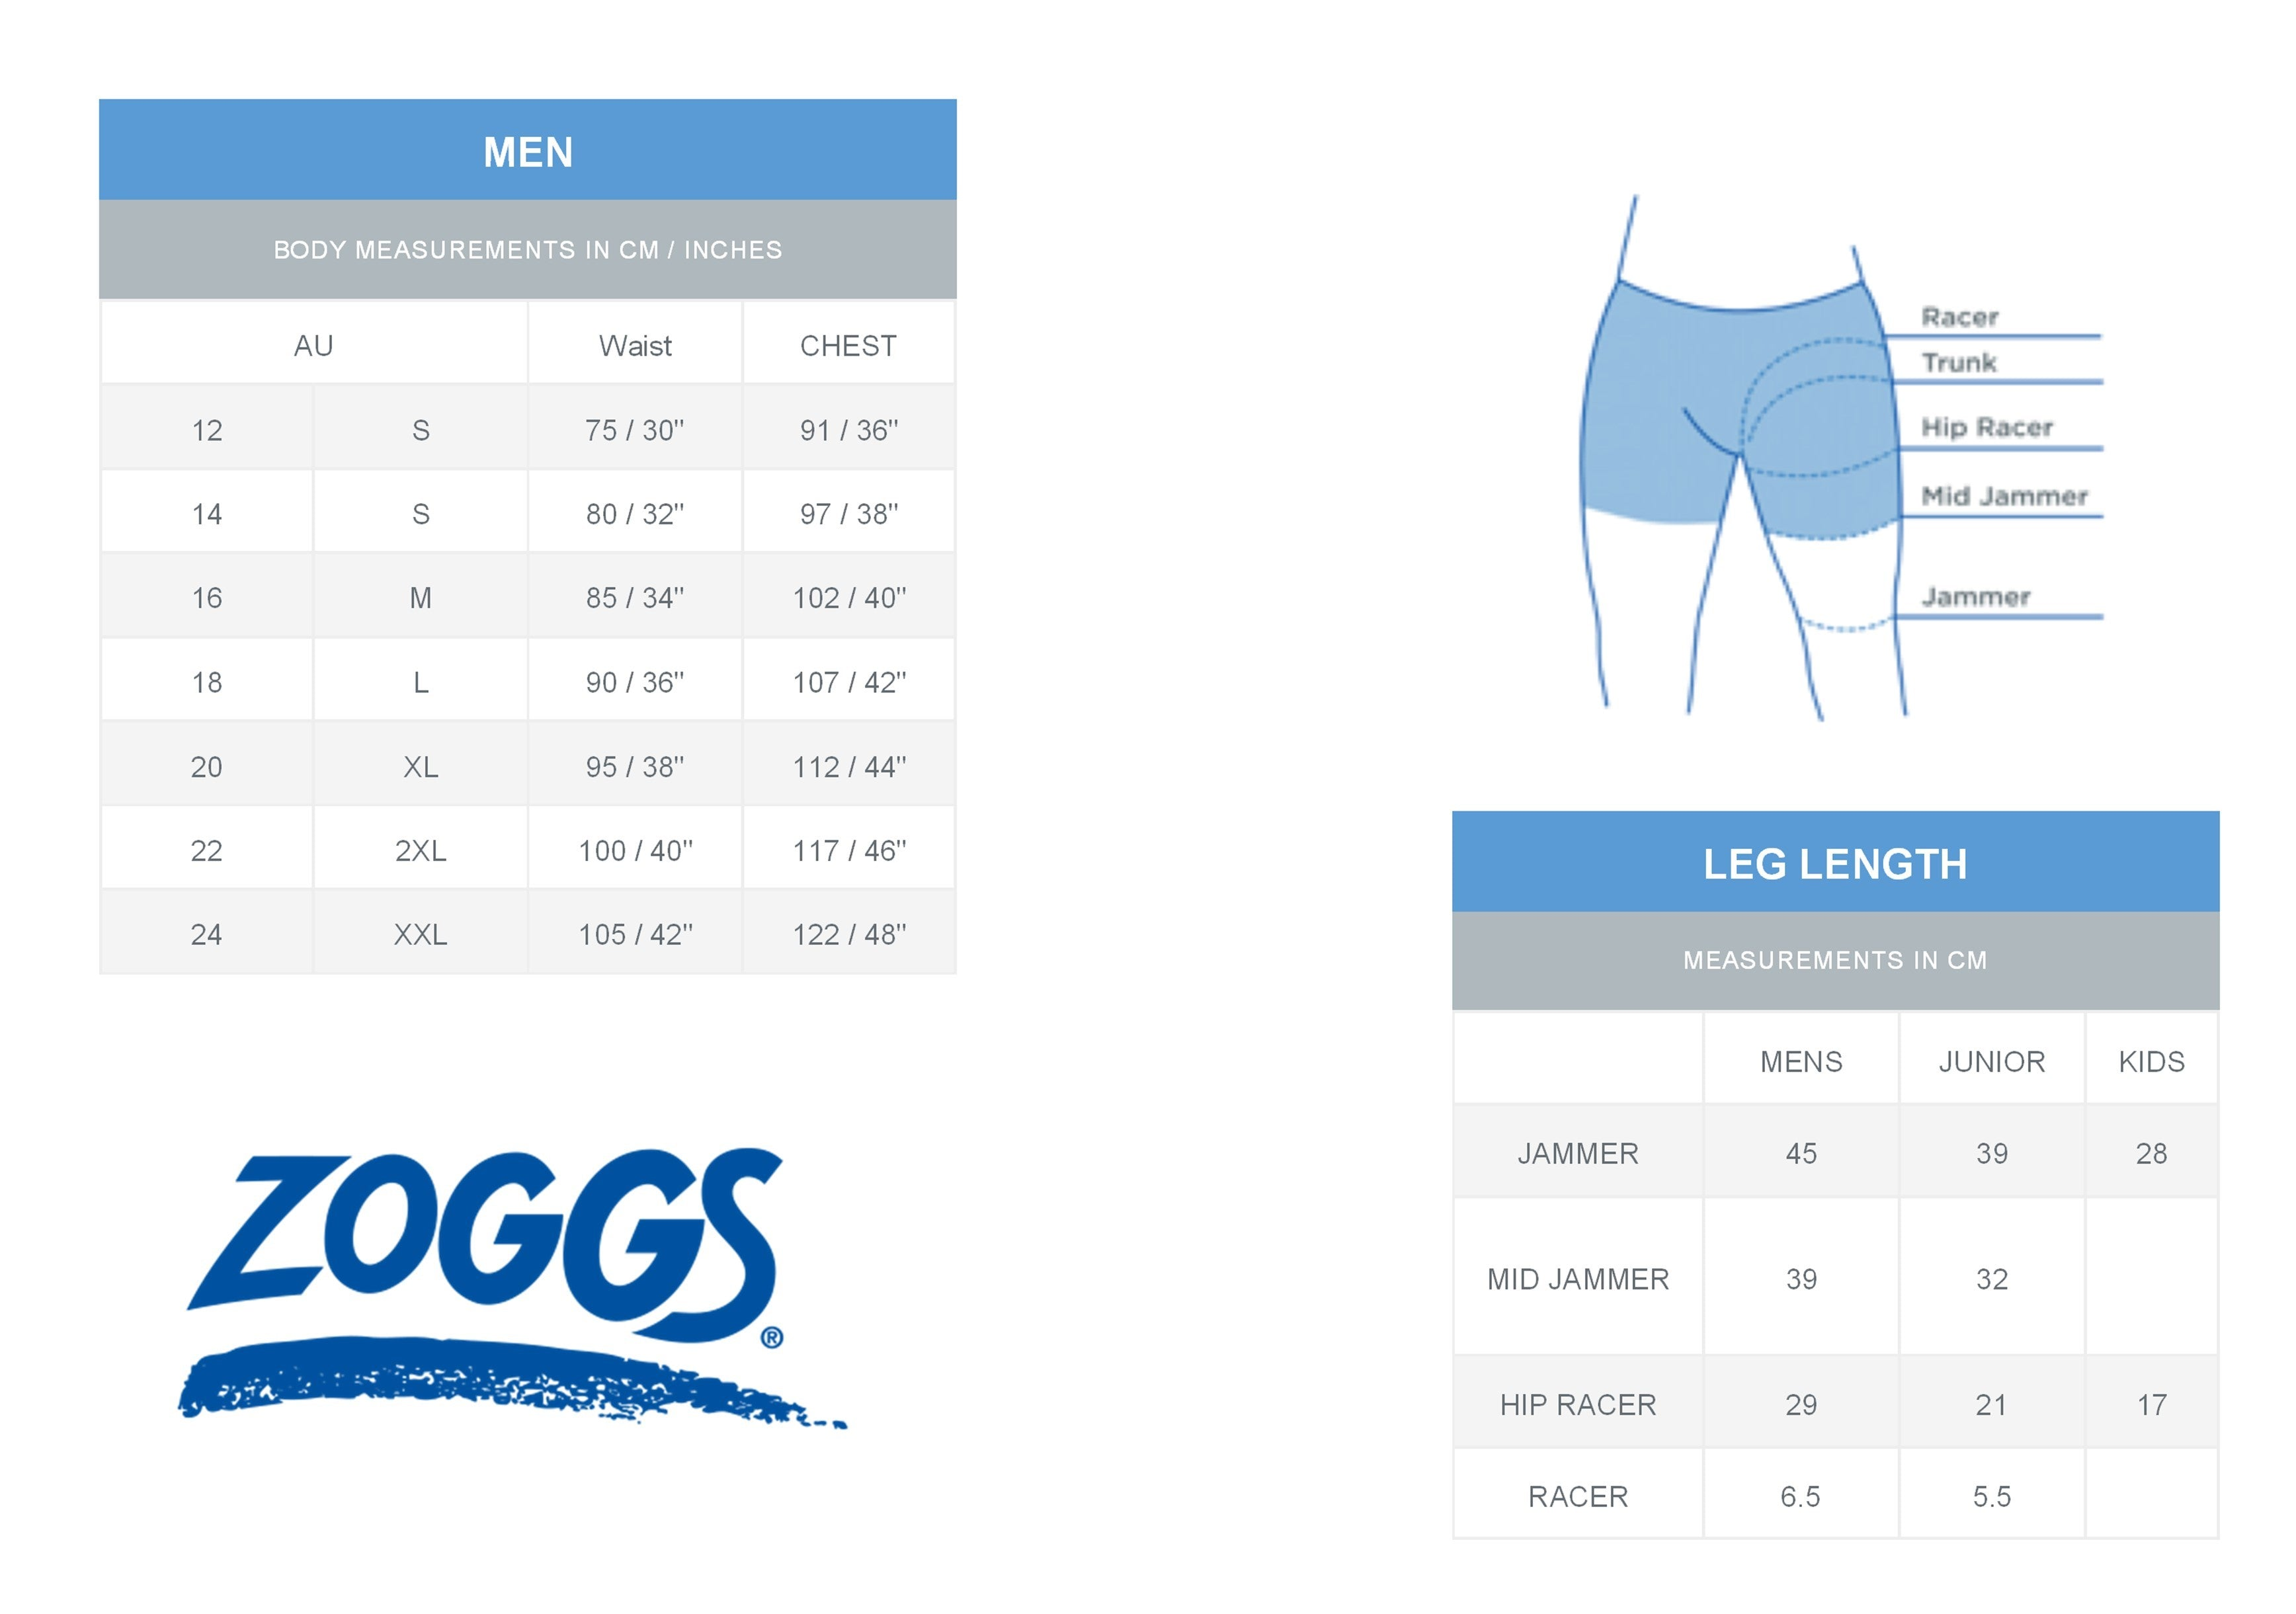 Zoggs Mens sizing